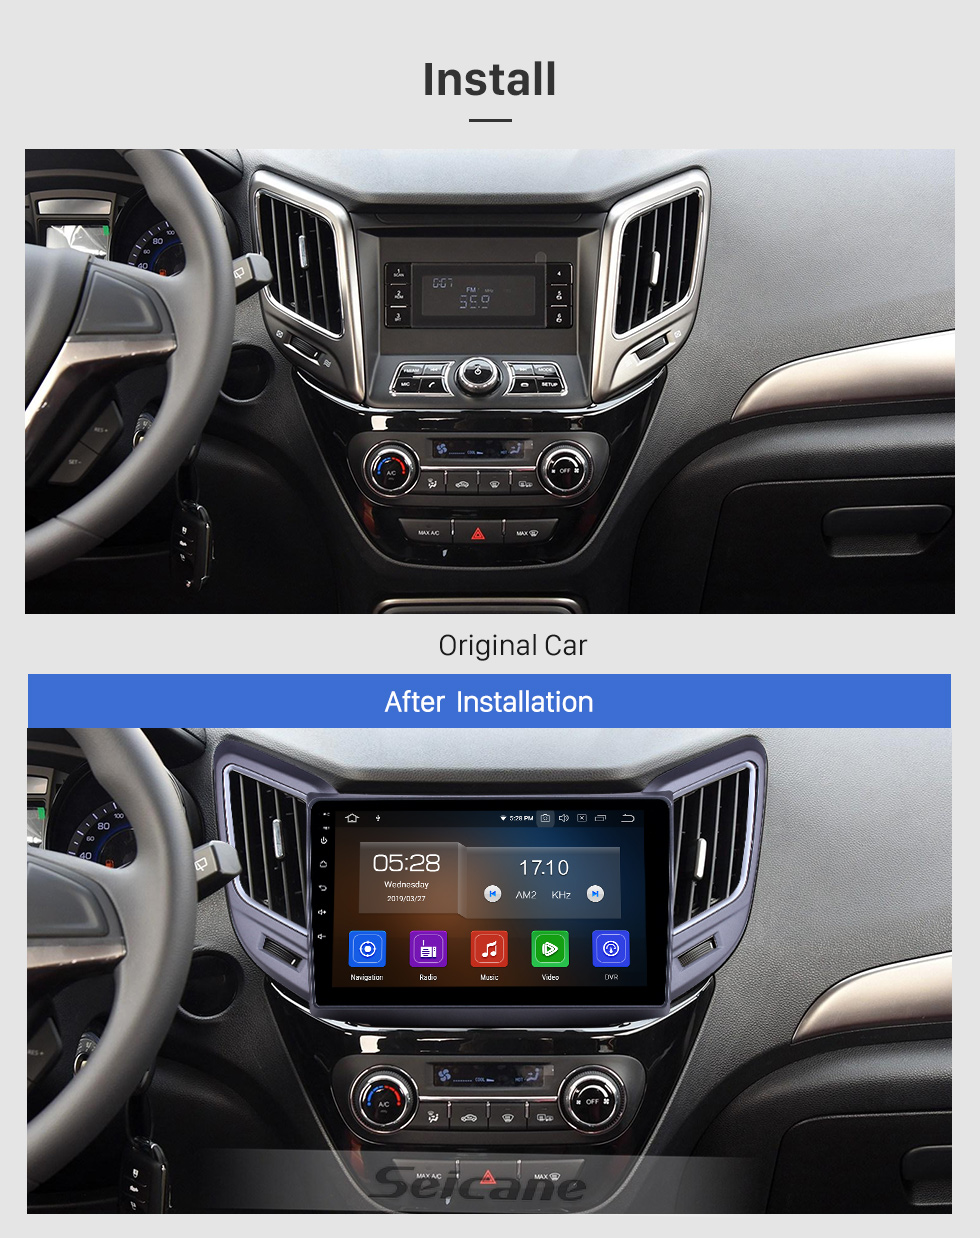 Seicane OEM 9 Zoll Android 9.0 Radio für 2016-2019 Changan CS15 Bluetooth Wifi HD Touchscreen GPS Navigation Carplay Unterstützung DAB + Rückfahrkamera